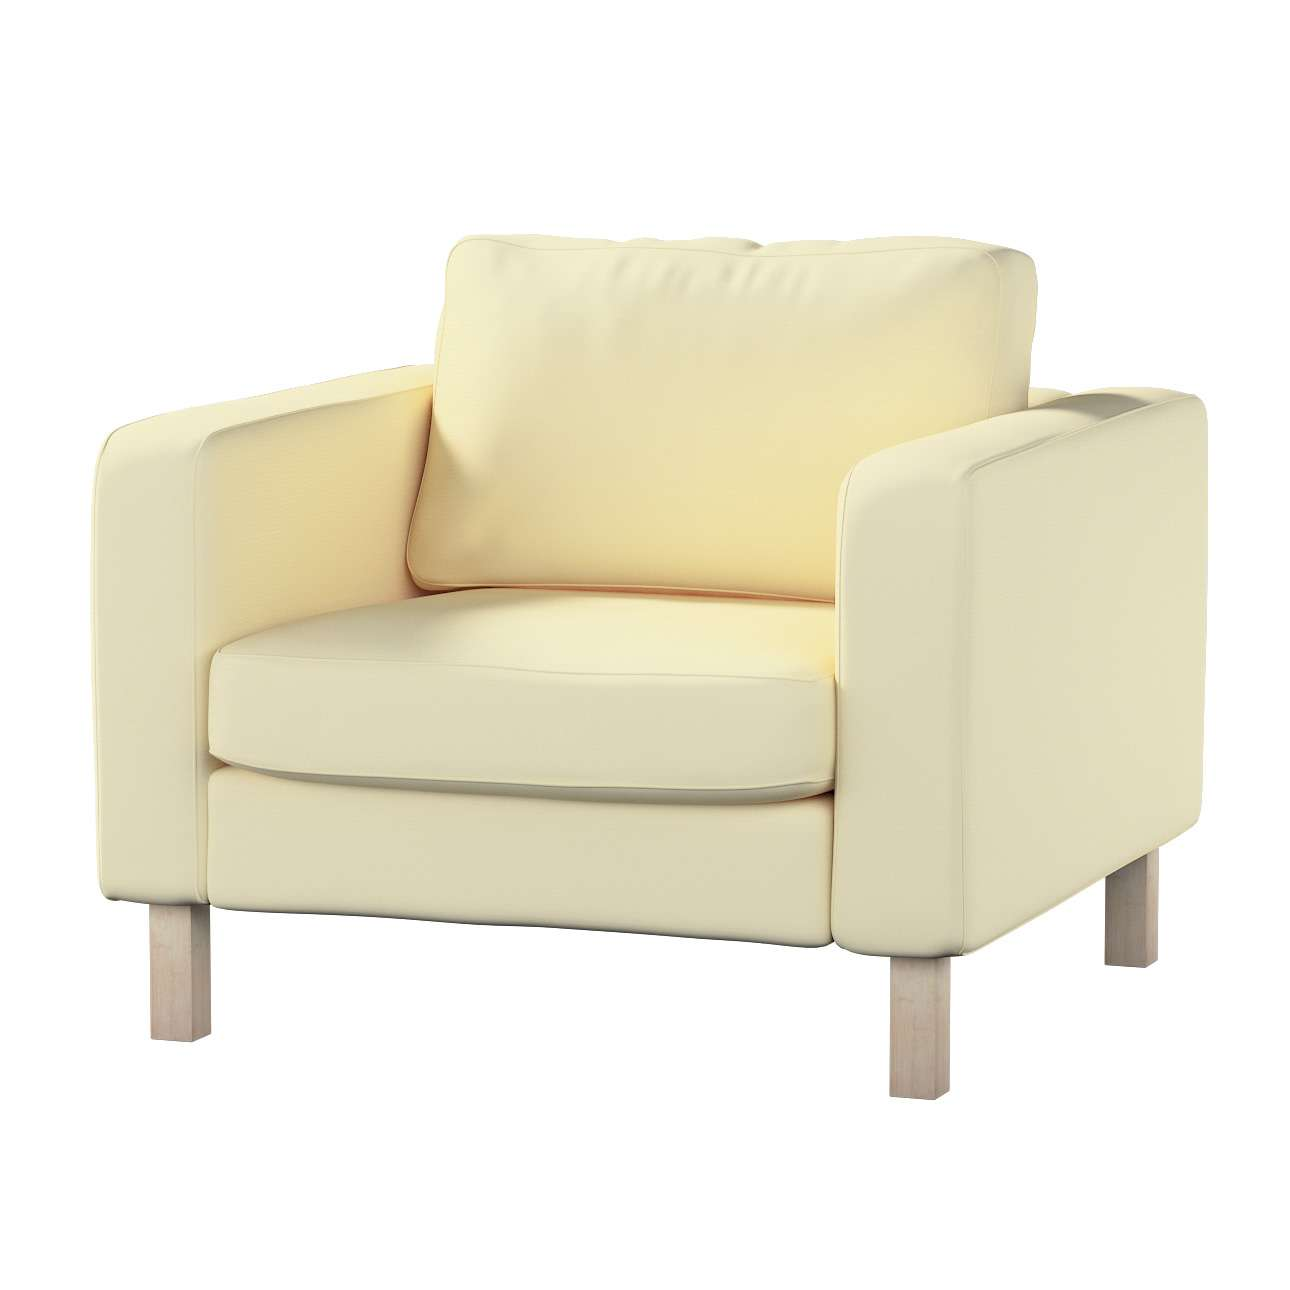 Karlstad armchair cover Karlstad armchair cover in collection Cotton Panama, fabric: 702-29